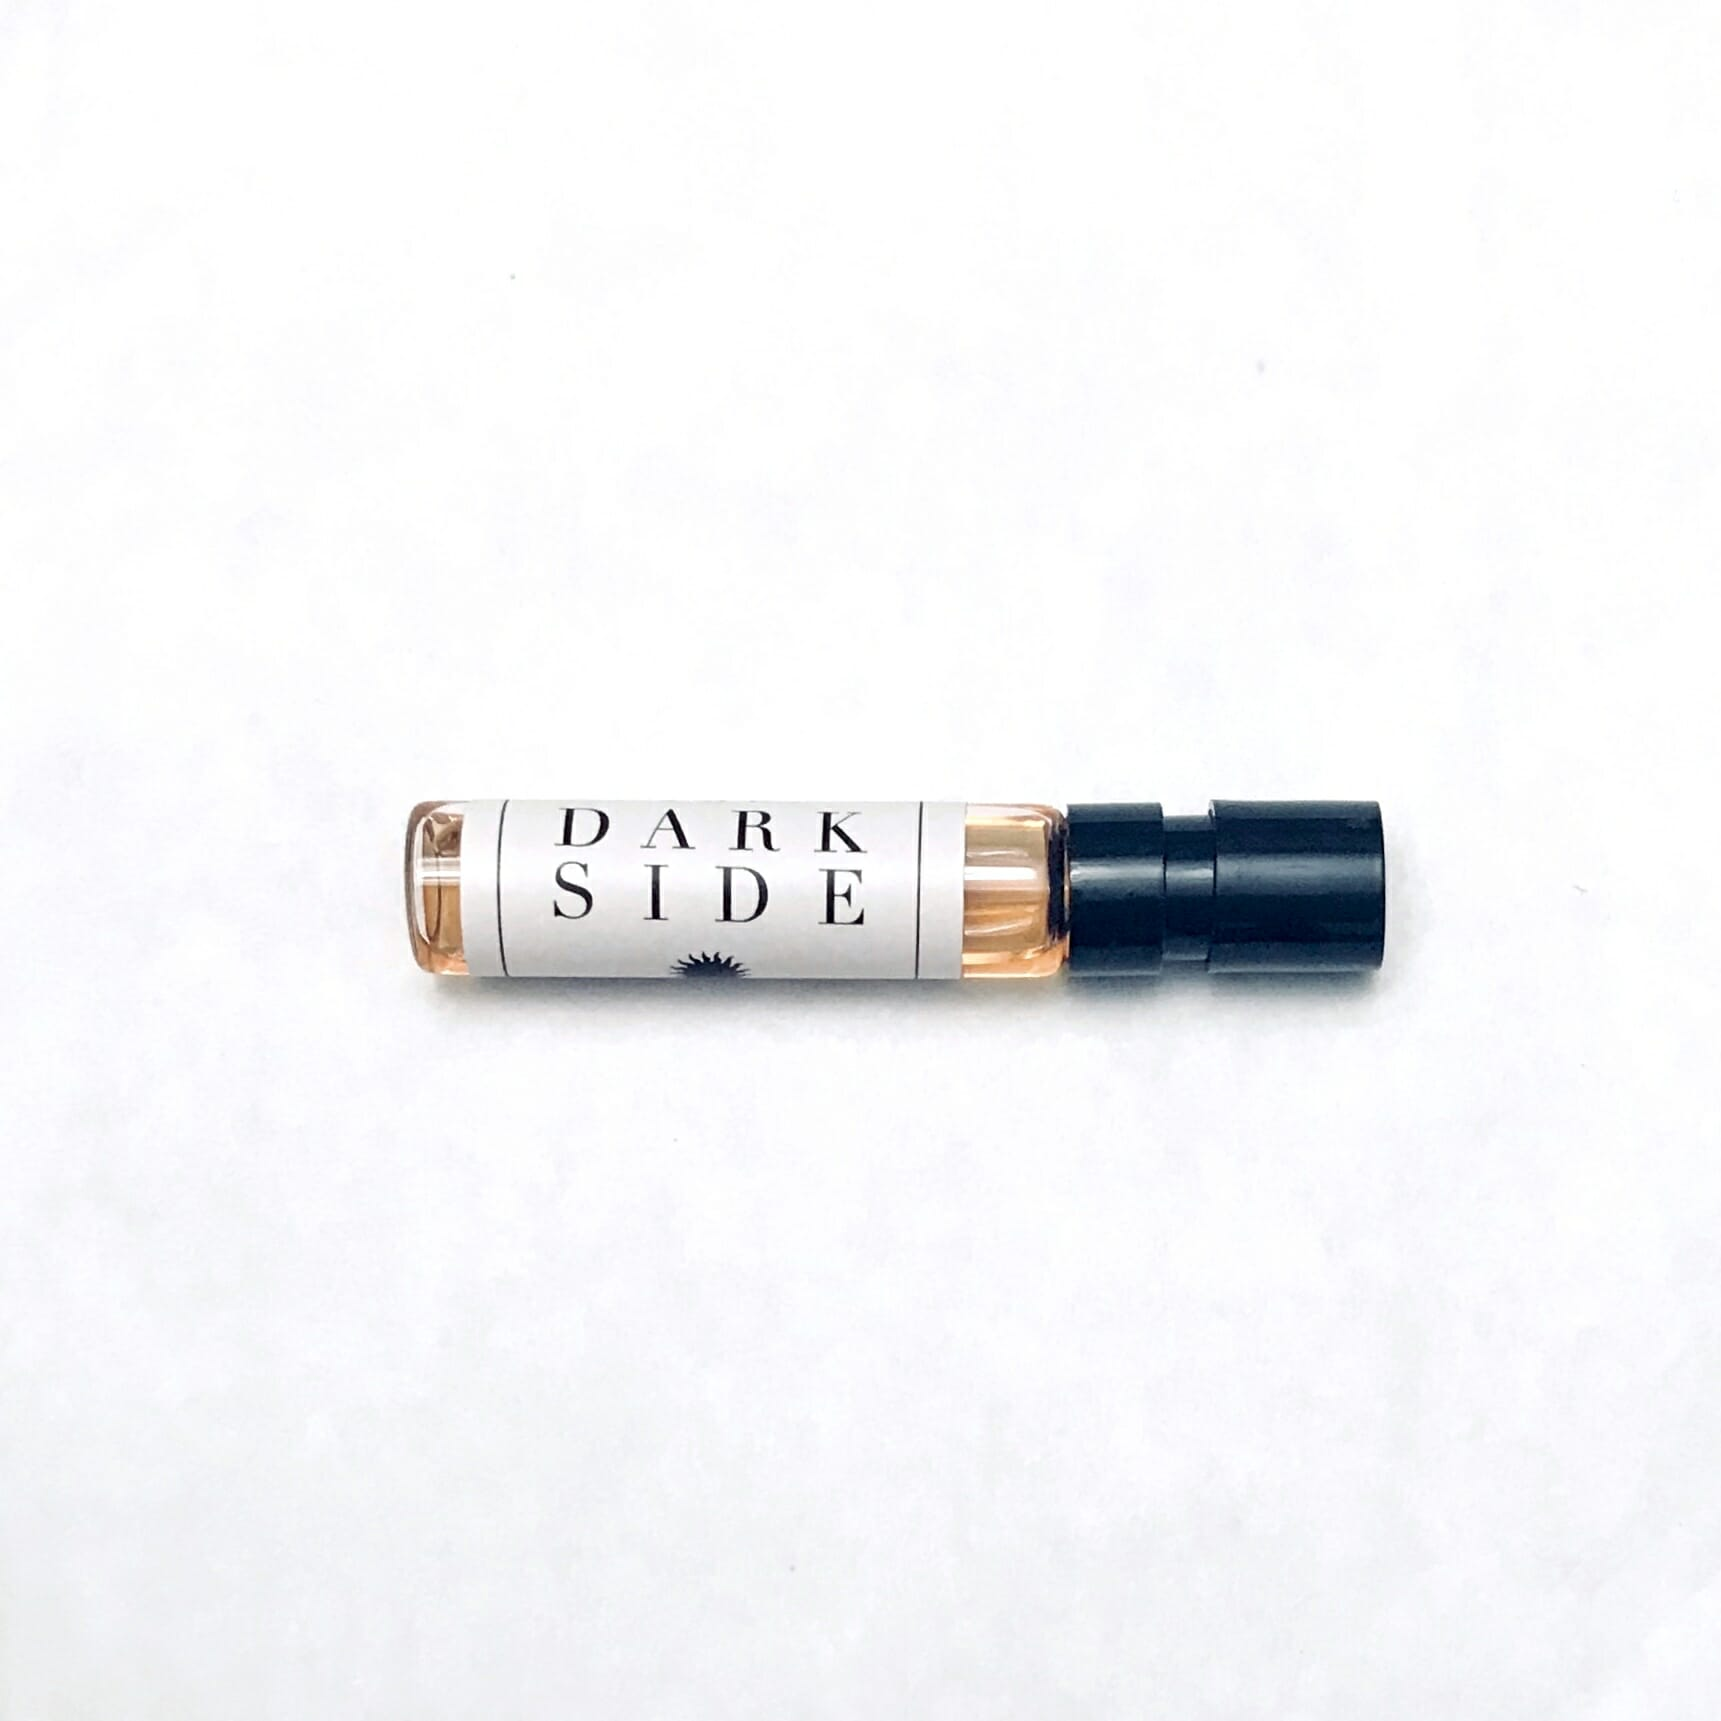 The Dark Side - sample 1,5 ml Francesca Bianchi Perfumes